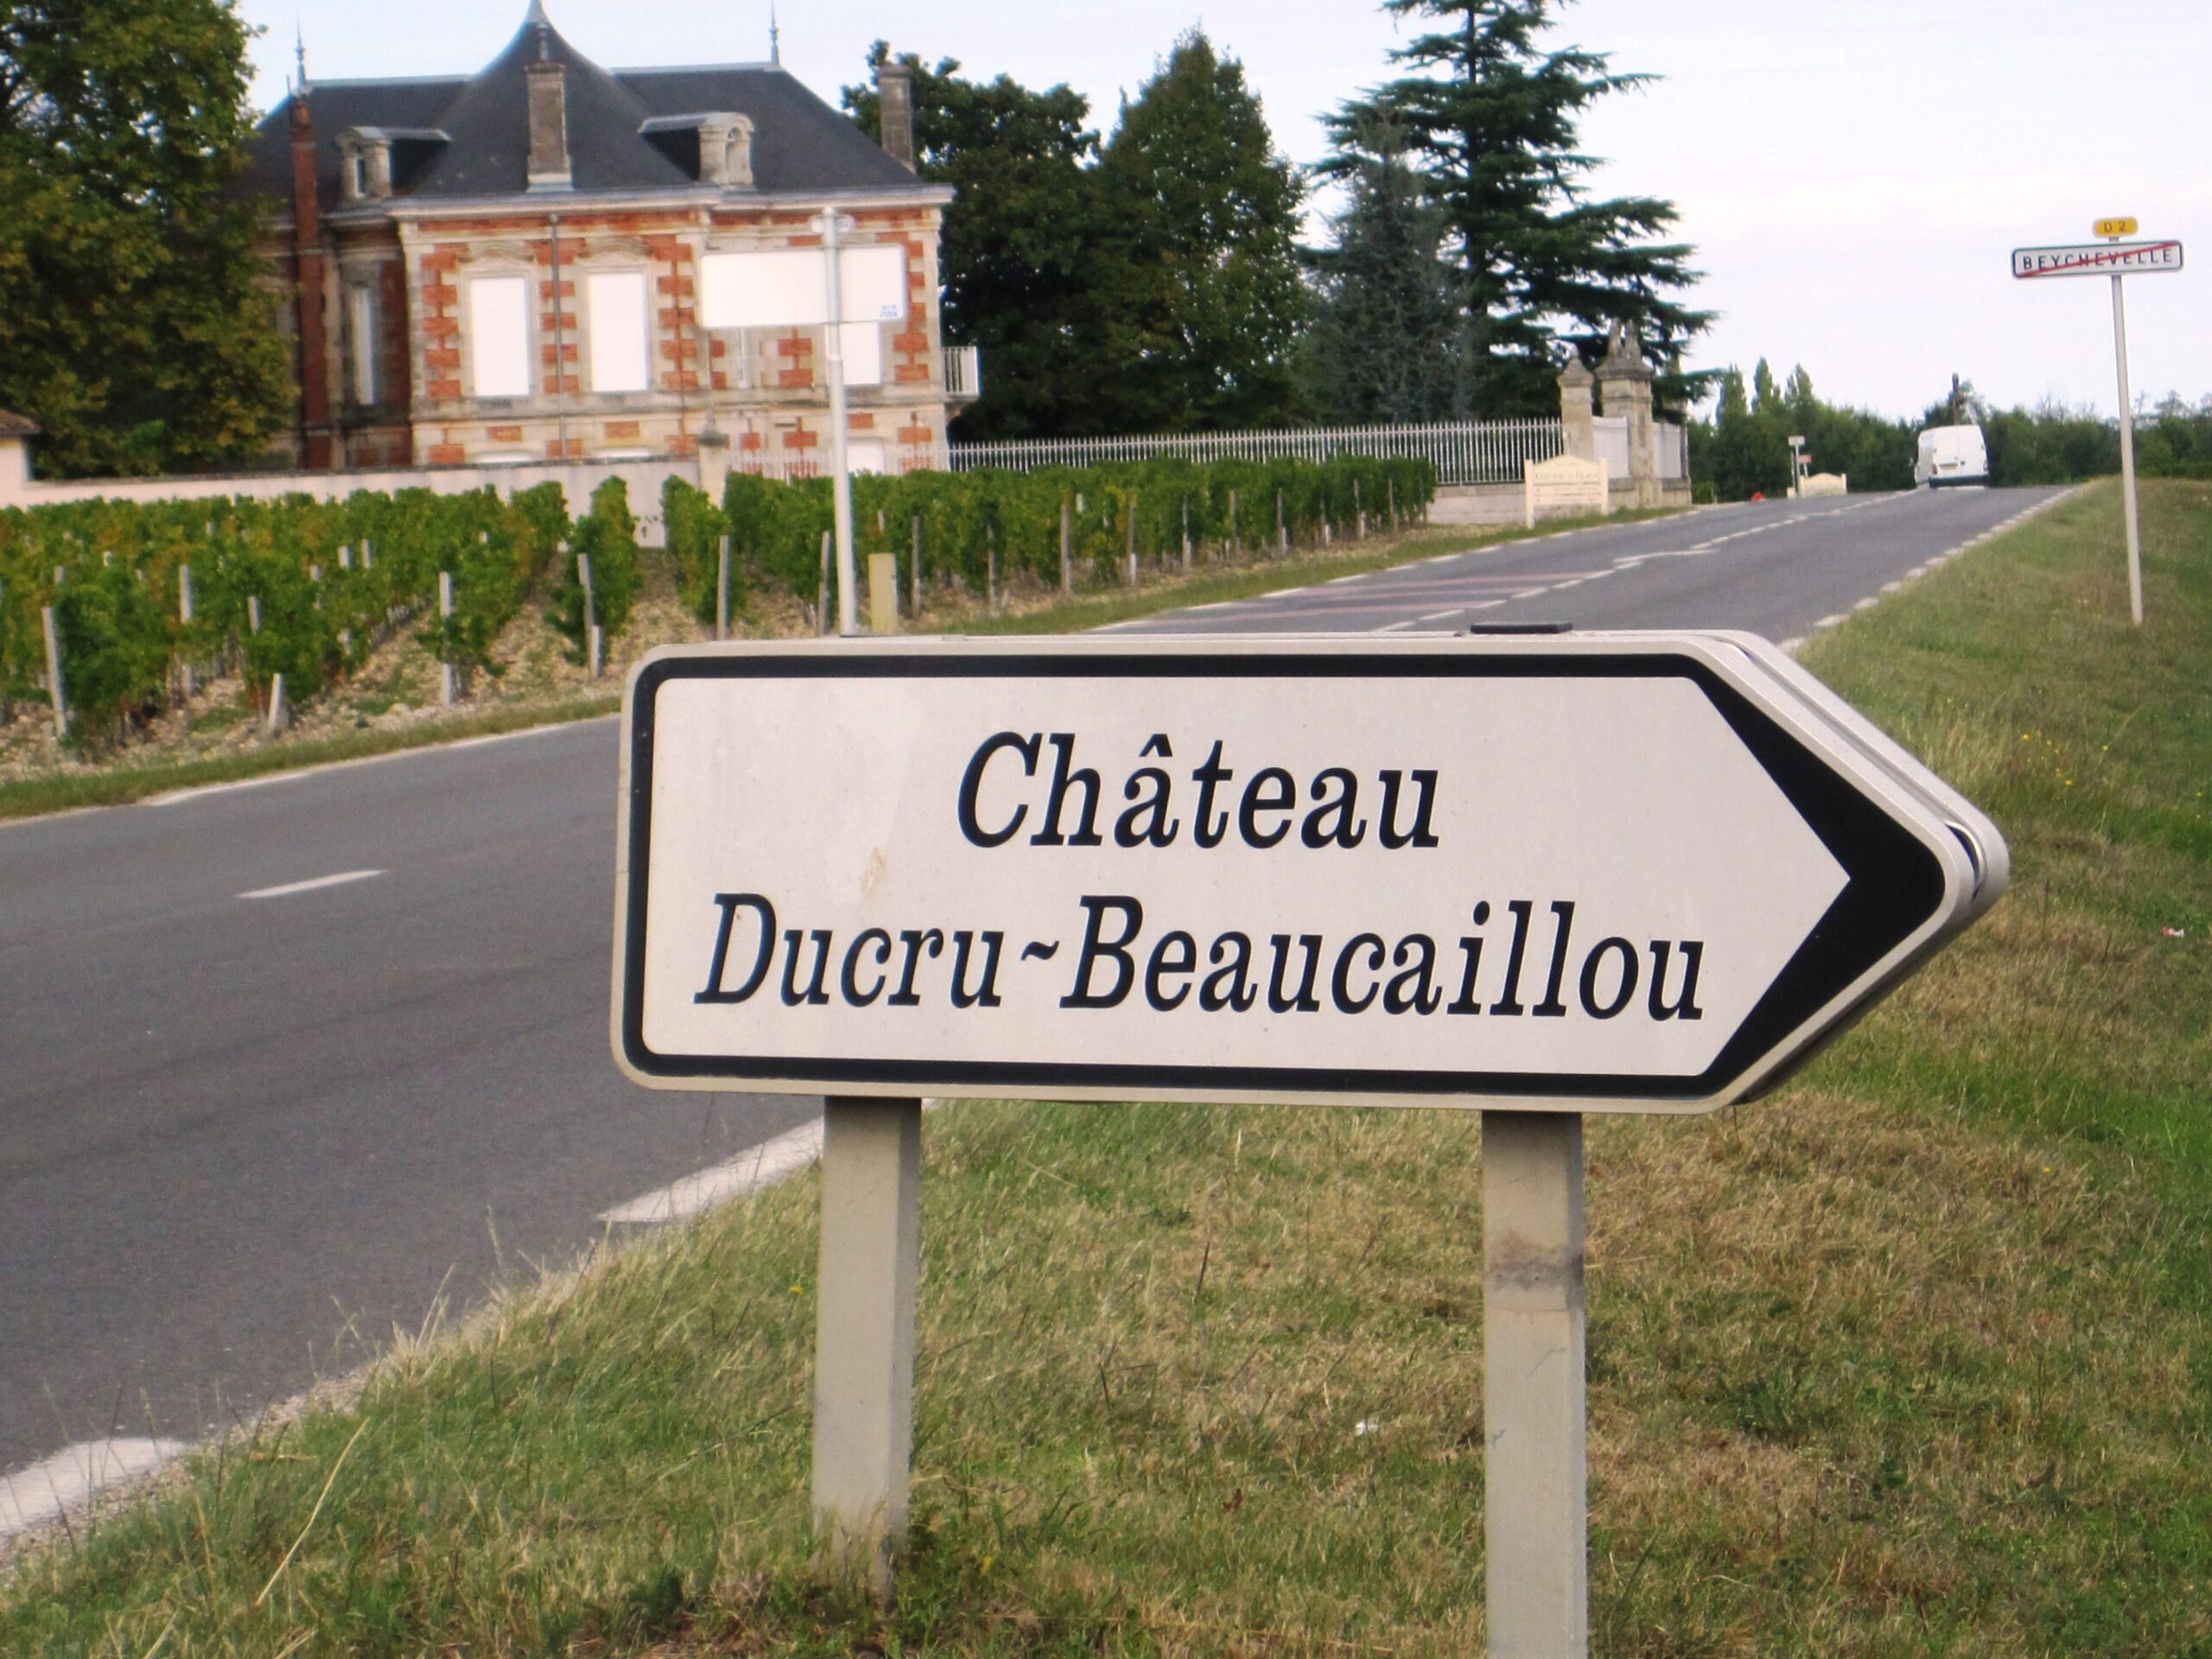 2011 Ducru Beaucaillou Tasting Notes, Bruno Borie Interview